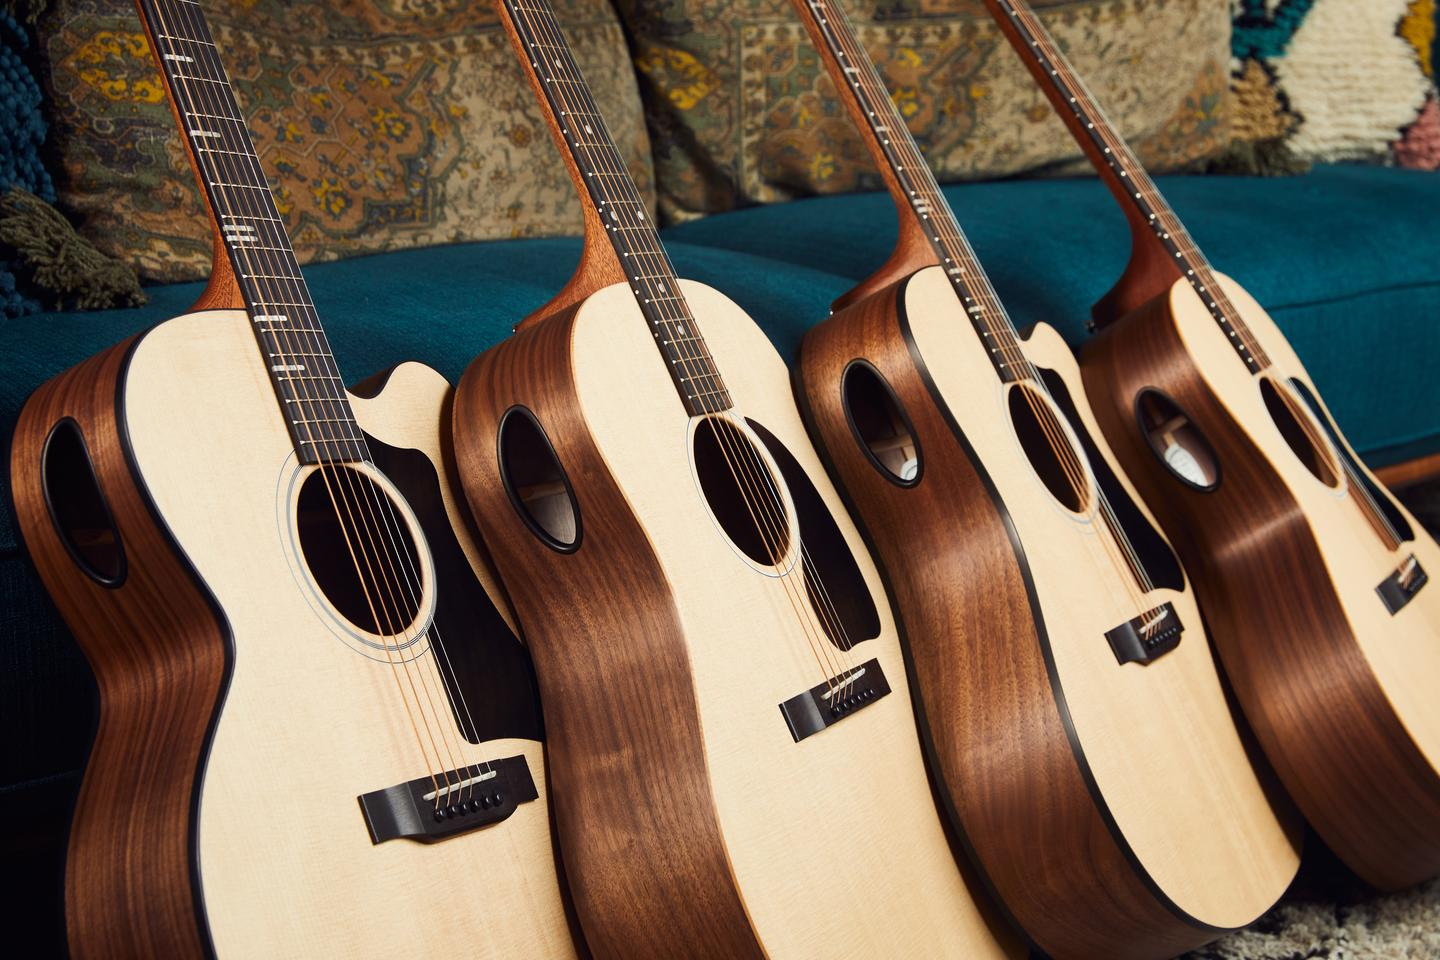 The Generation Collection of acoustic guitars featuring the Gibson Player Port is made up of four models